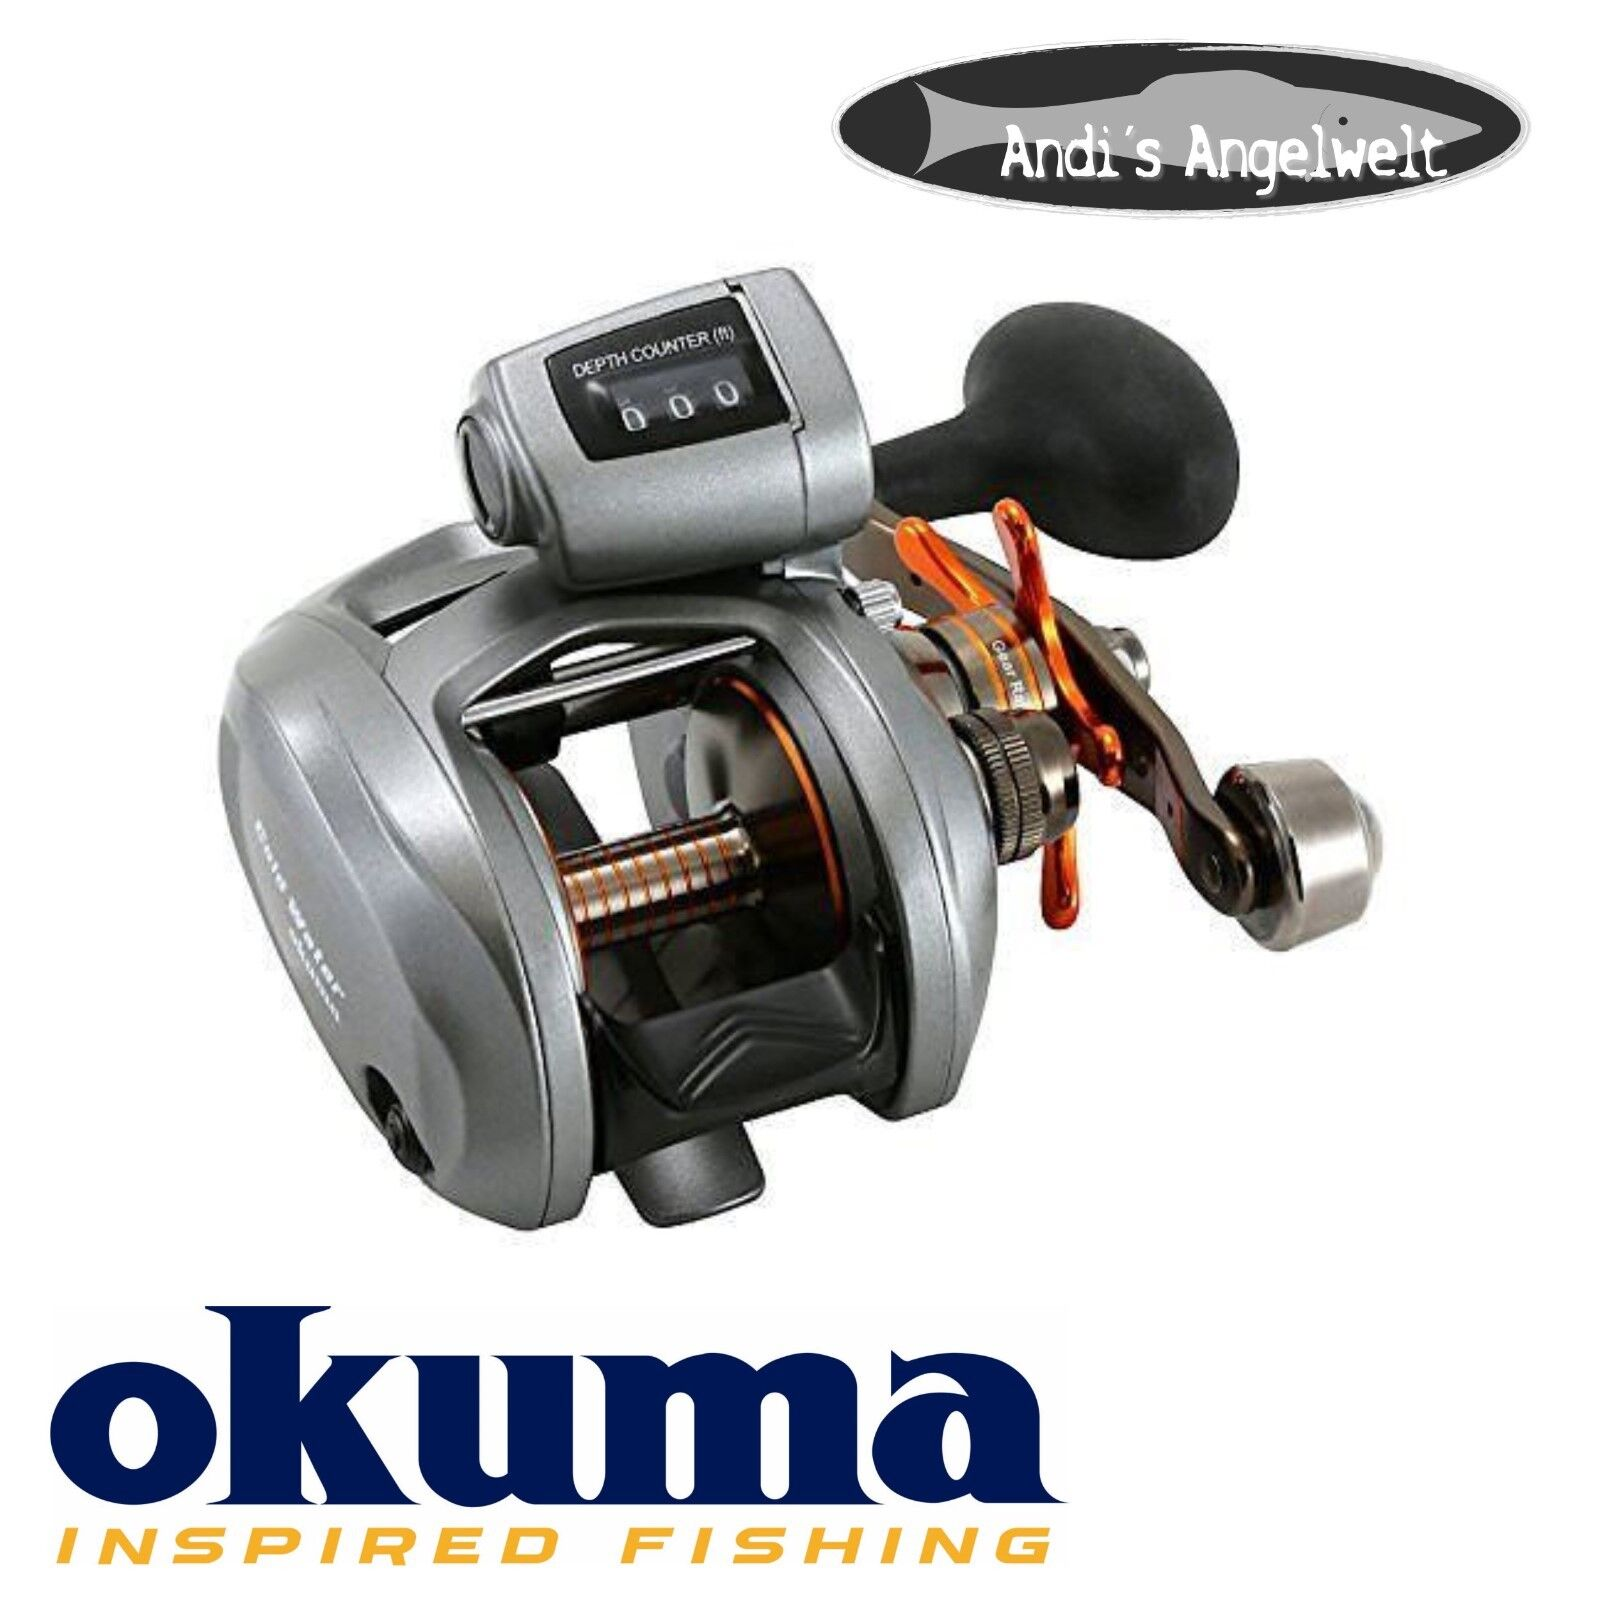 Okuma Cold Water CW-354D - Rechtshandrolle - mit Tiefenmesser (ft)   discount sales